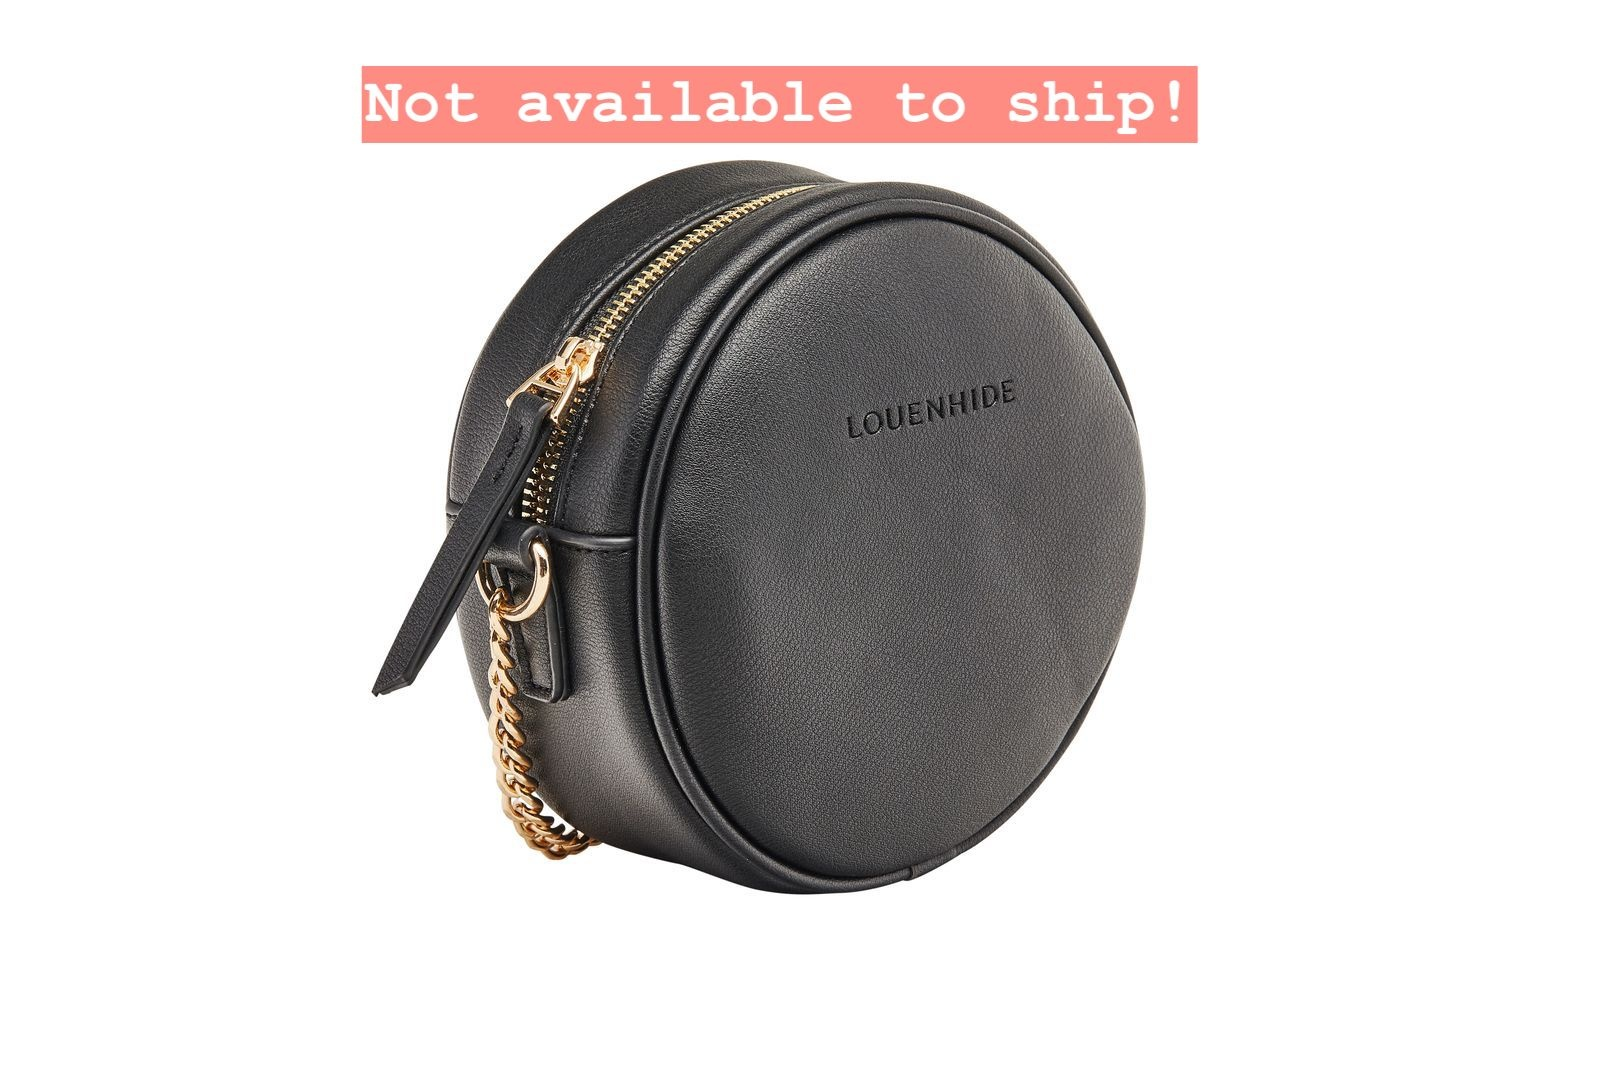 Louenhide Bethany Purse- Black